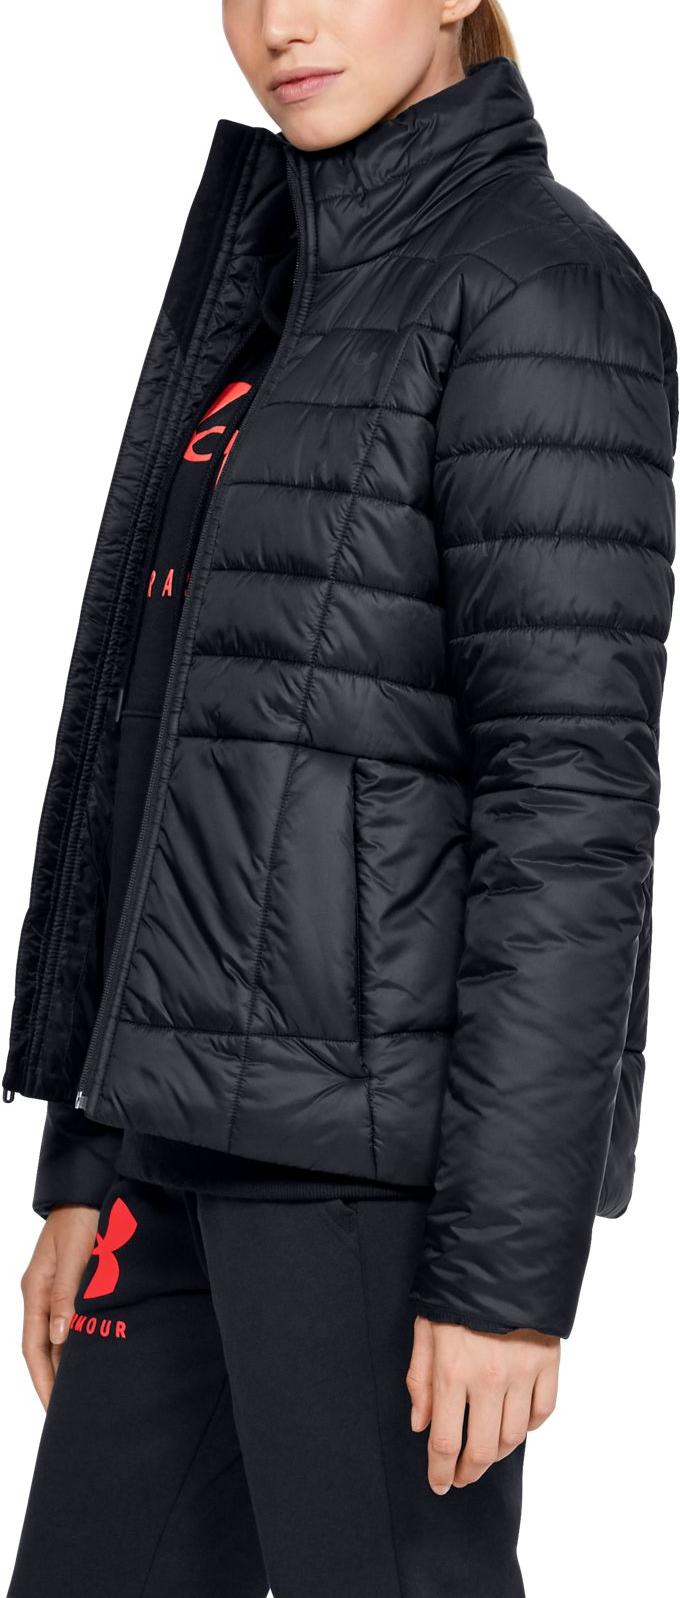 Under Armour UA Armour Insulated Jacket Dzseki